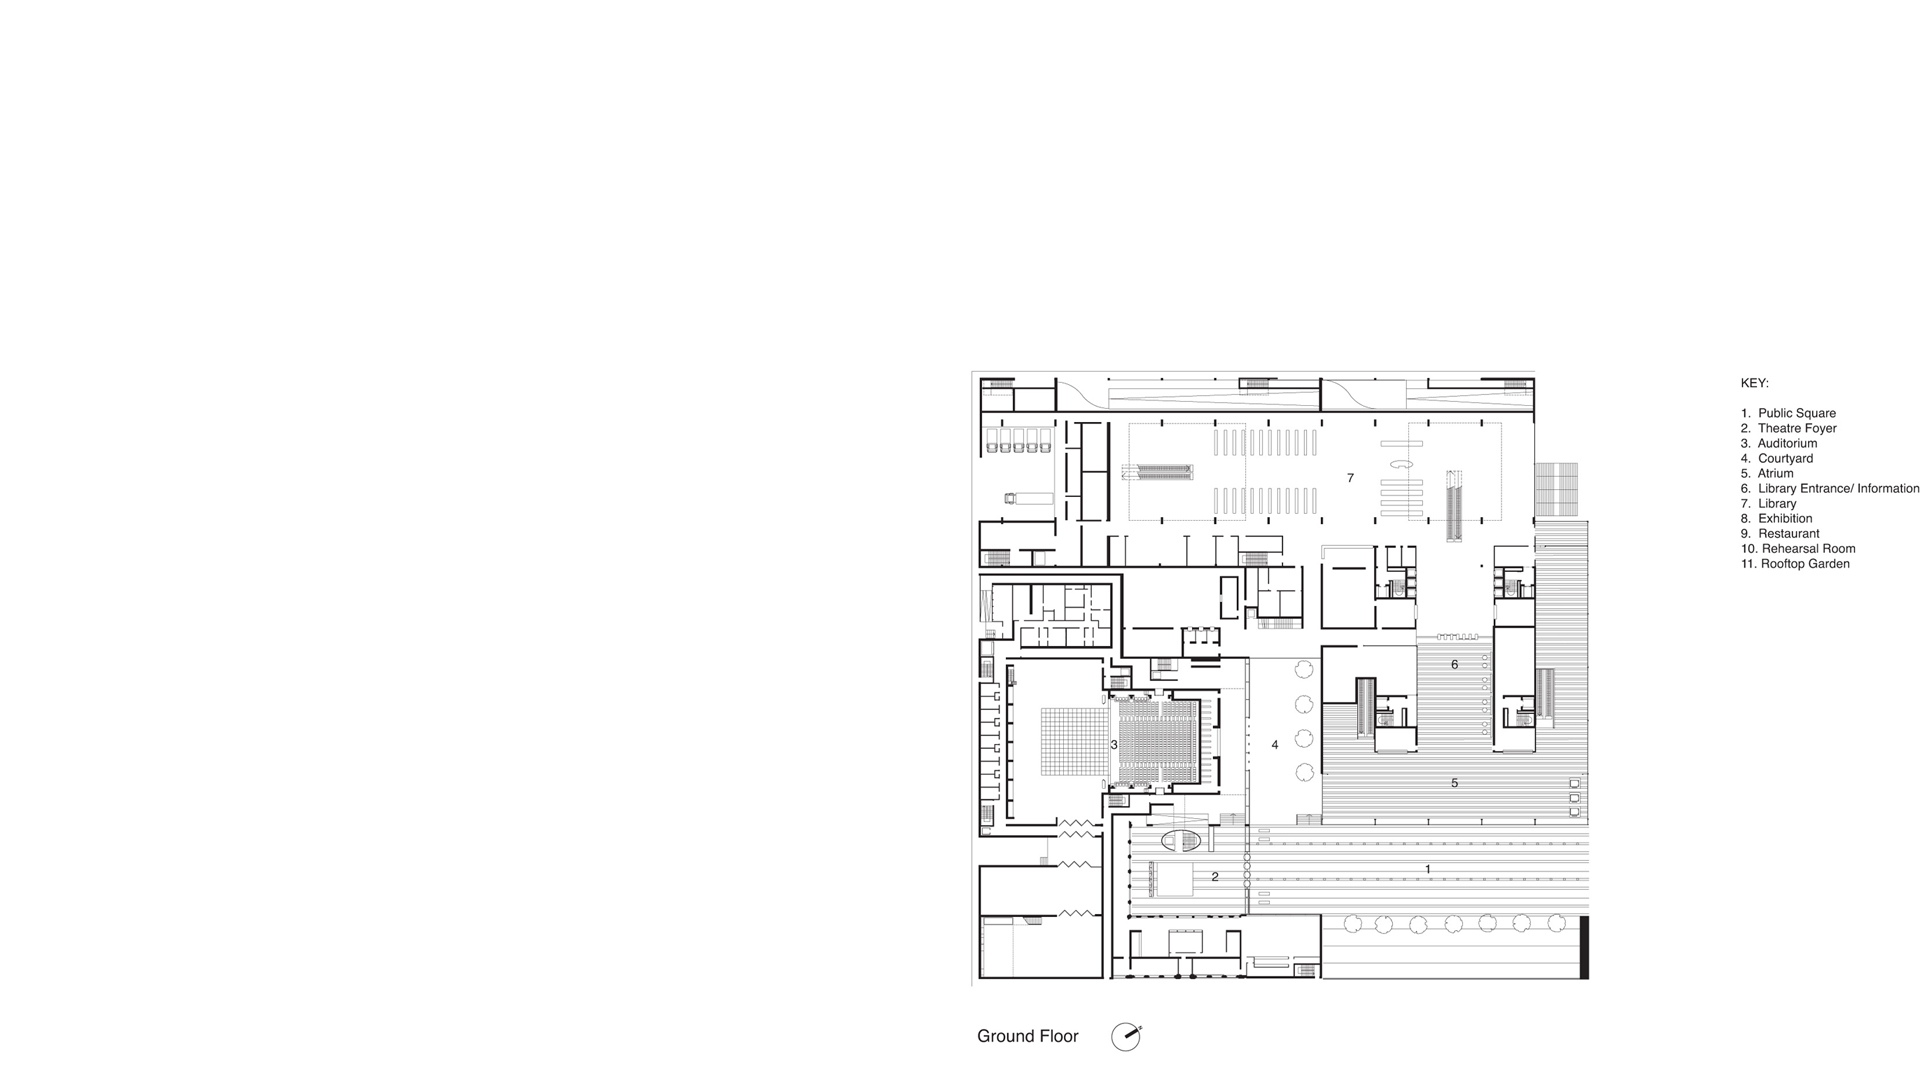 Ground level plan of the proposed Centro Culturale di Torino showing library, concert hall and piazza